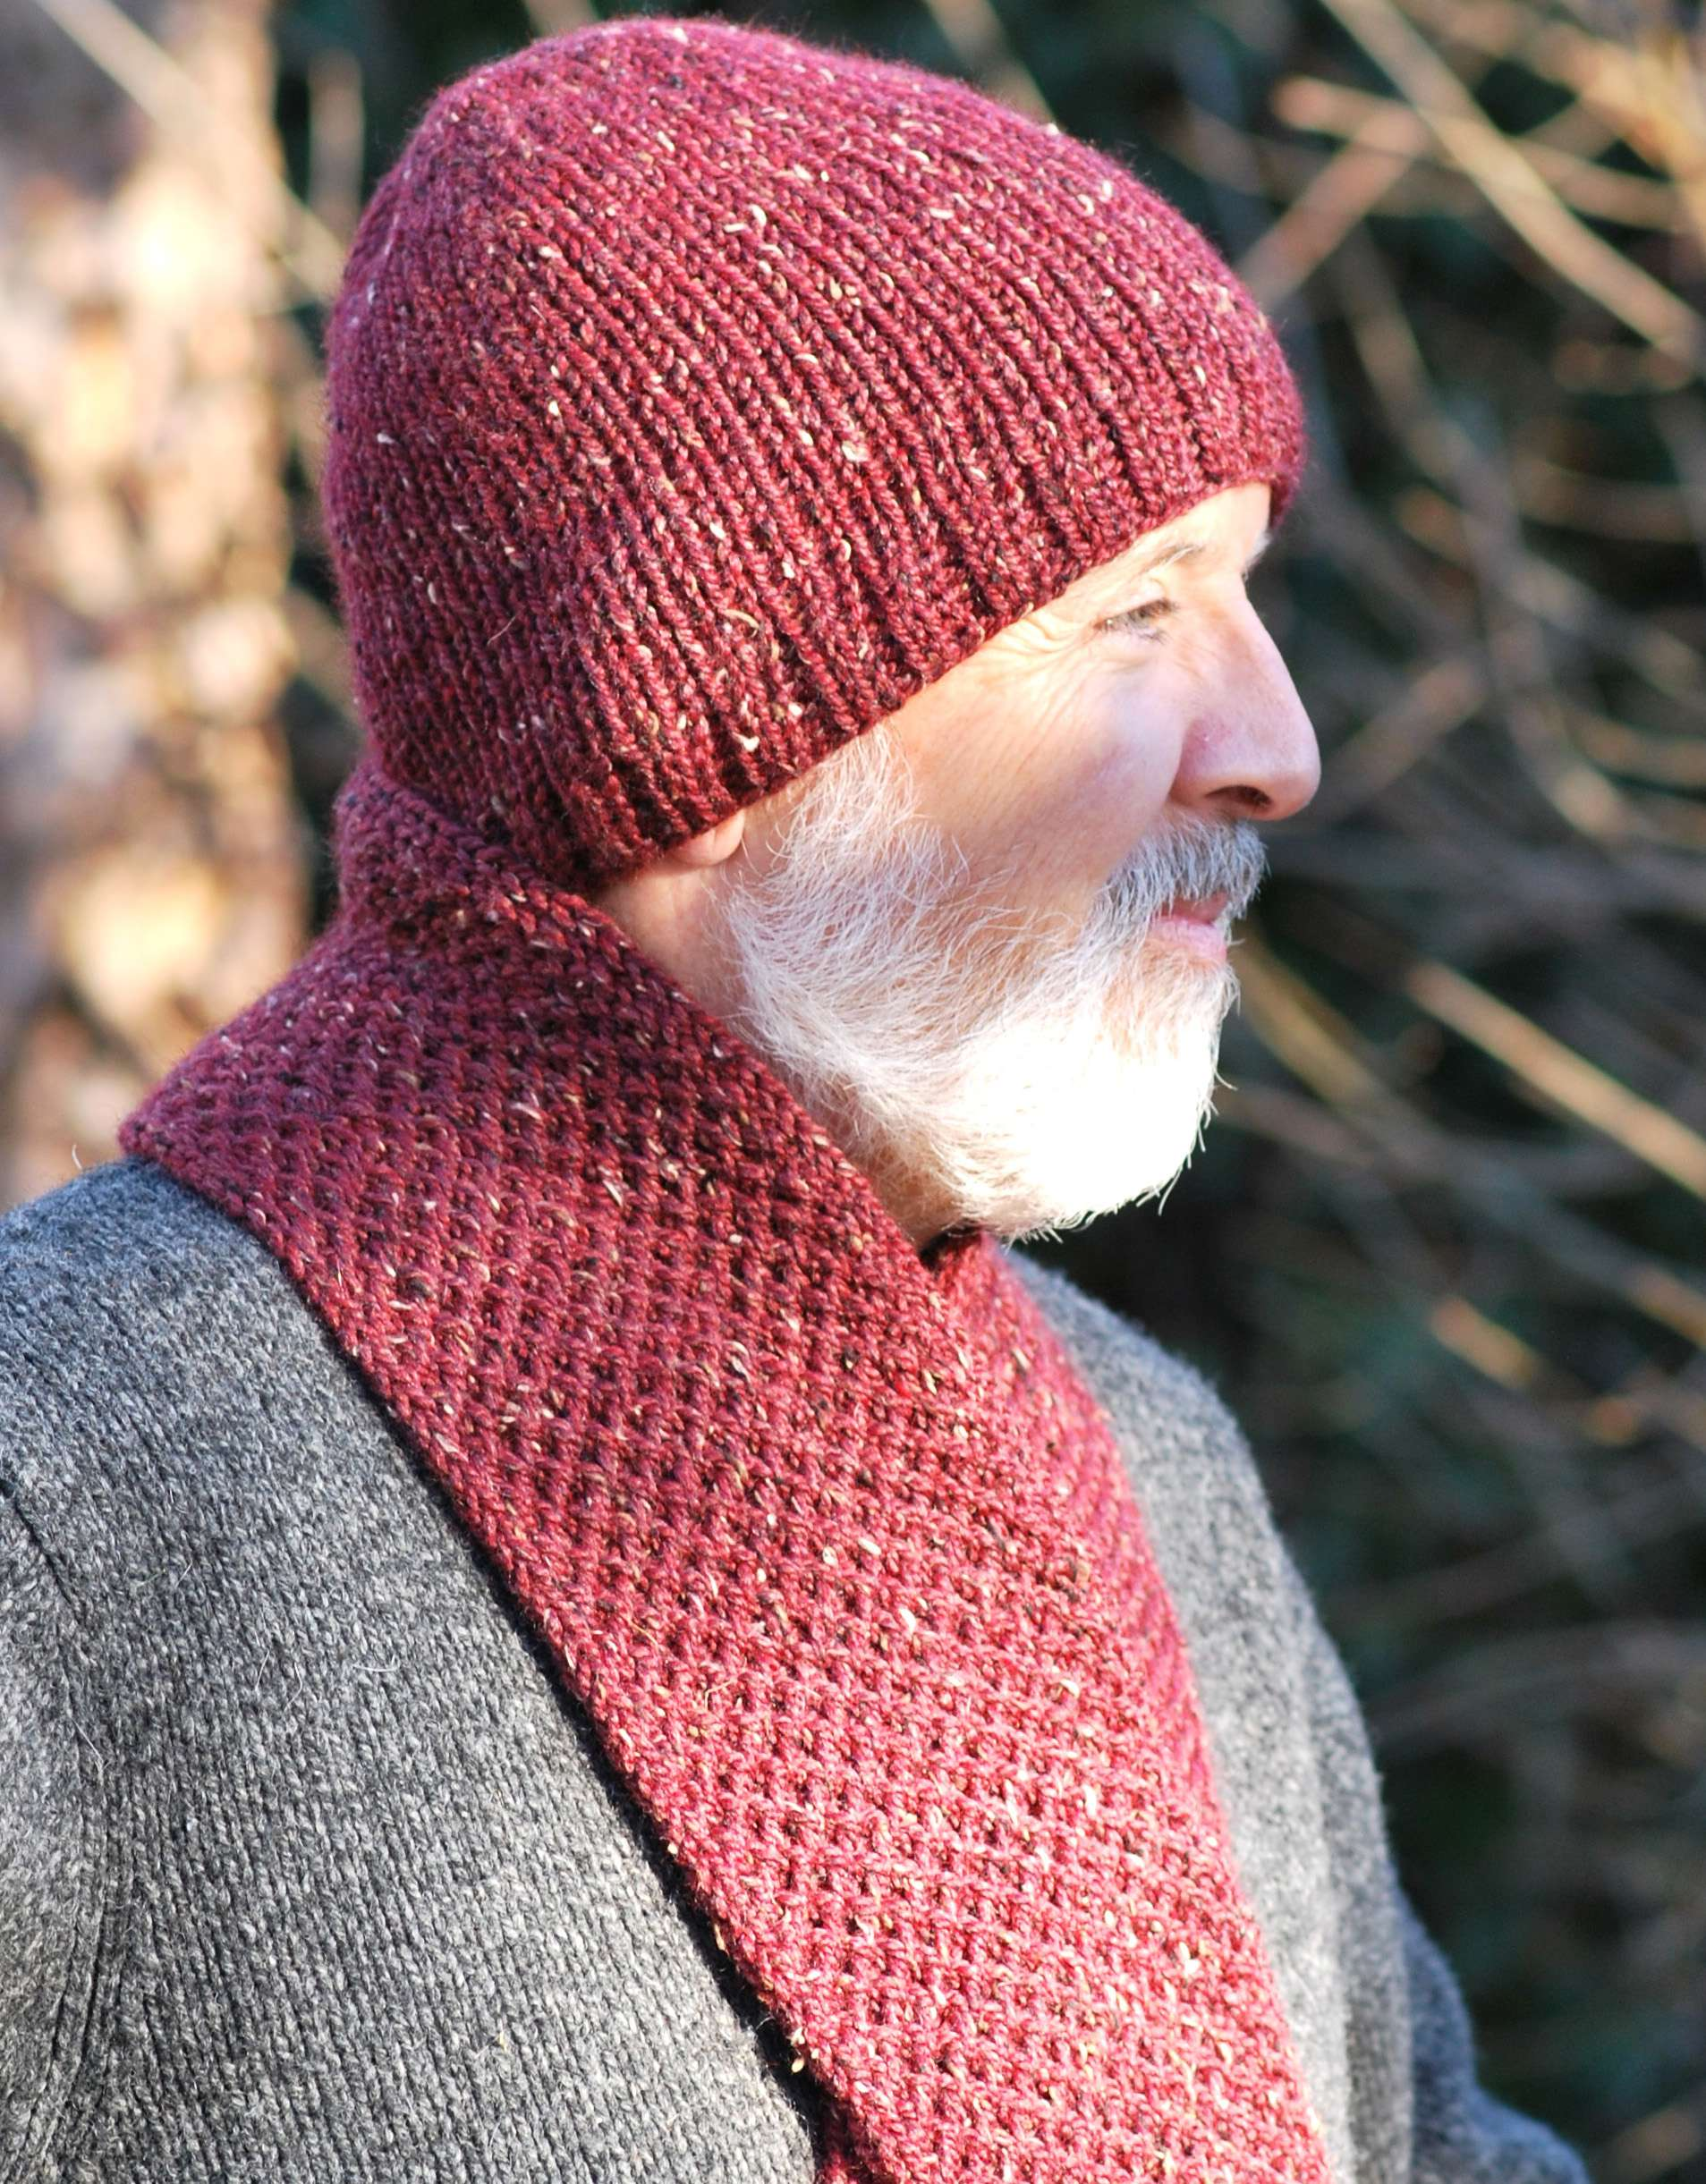 Knitted Stockinette Stitch Scarf Pattern : Men s Basic Hat and Scarf (double knit)   Knitting Board Blog